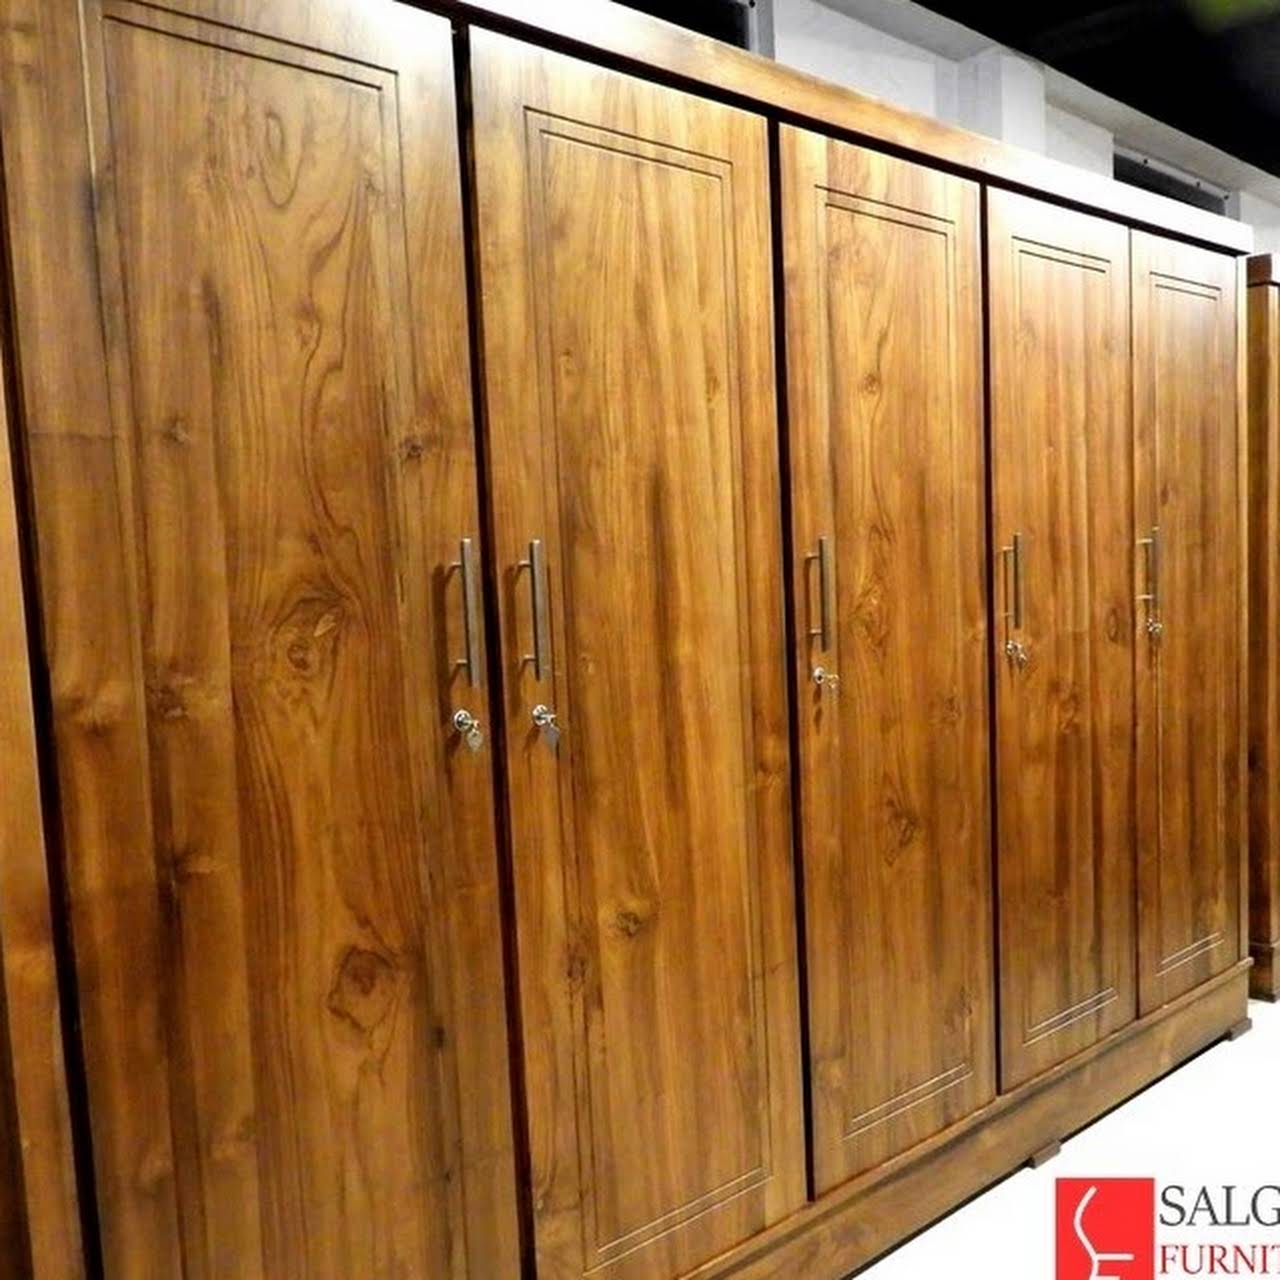 Salgado Furnitures - Comfort,convenience and a better life style